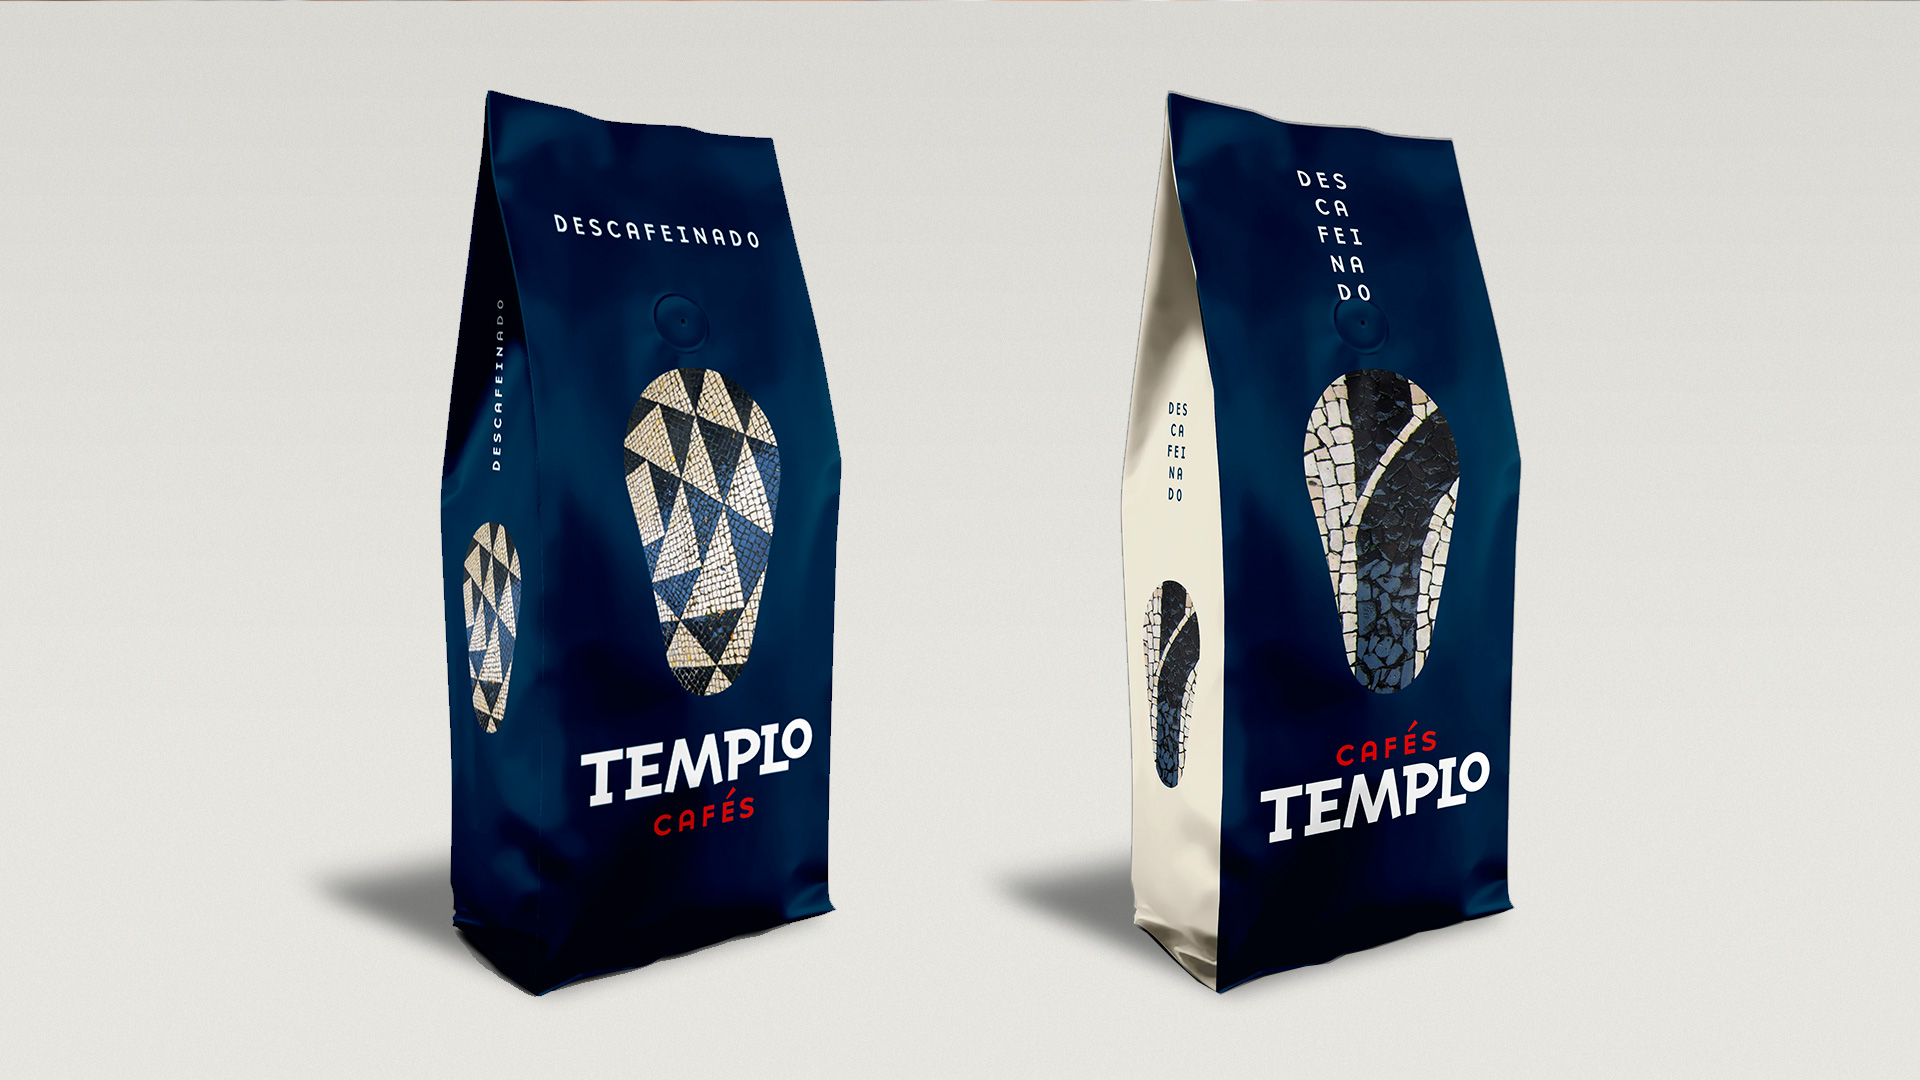 Product design, packaging and creative concept for Cafés Templo Portugal, 2020